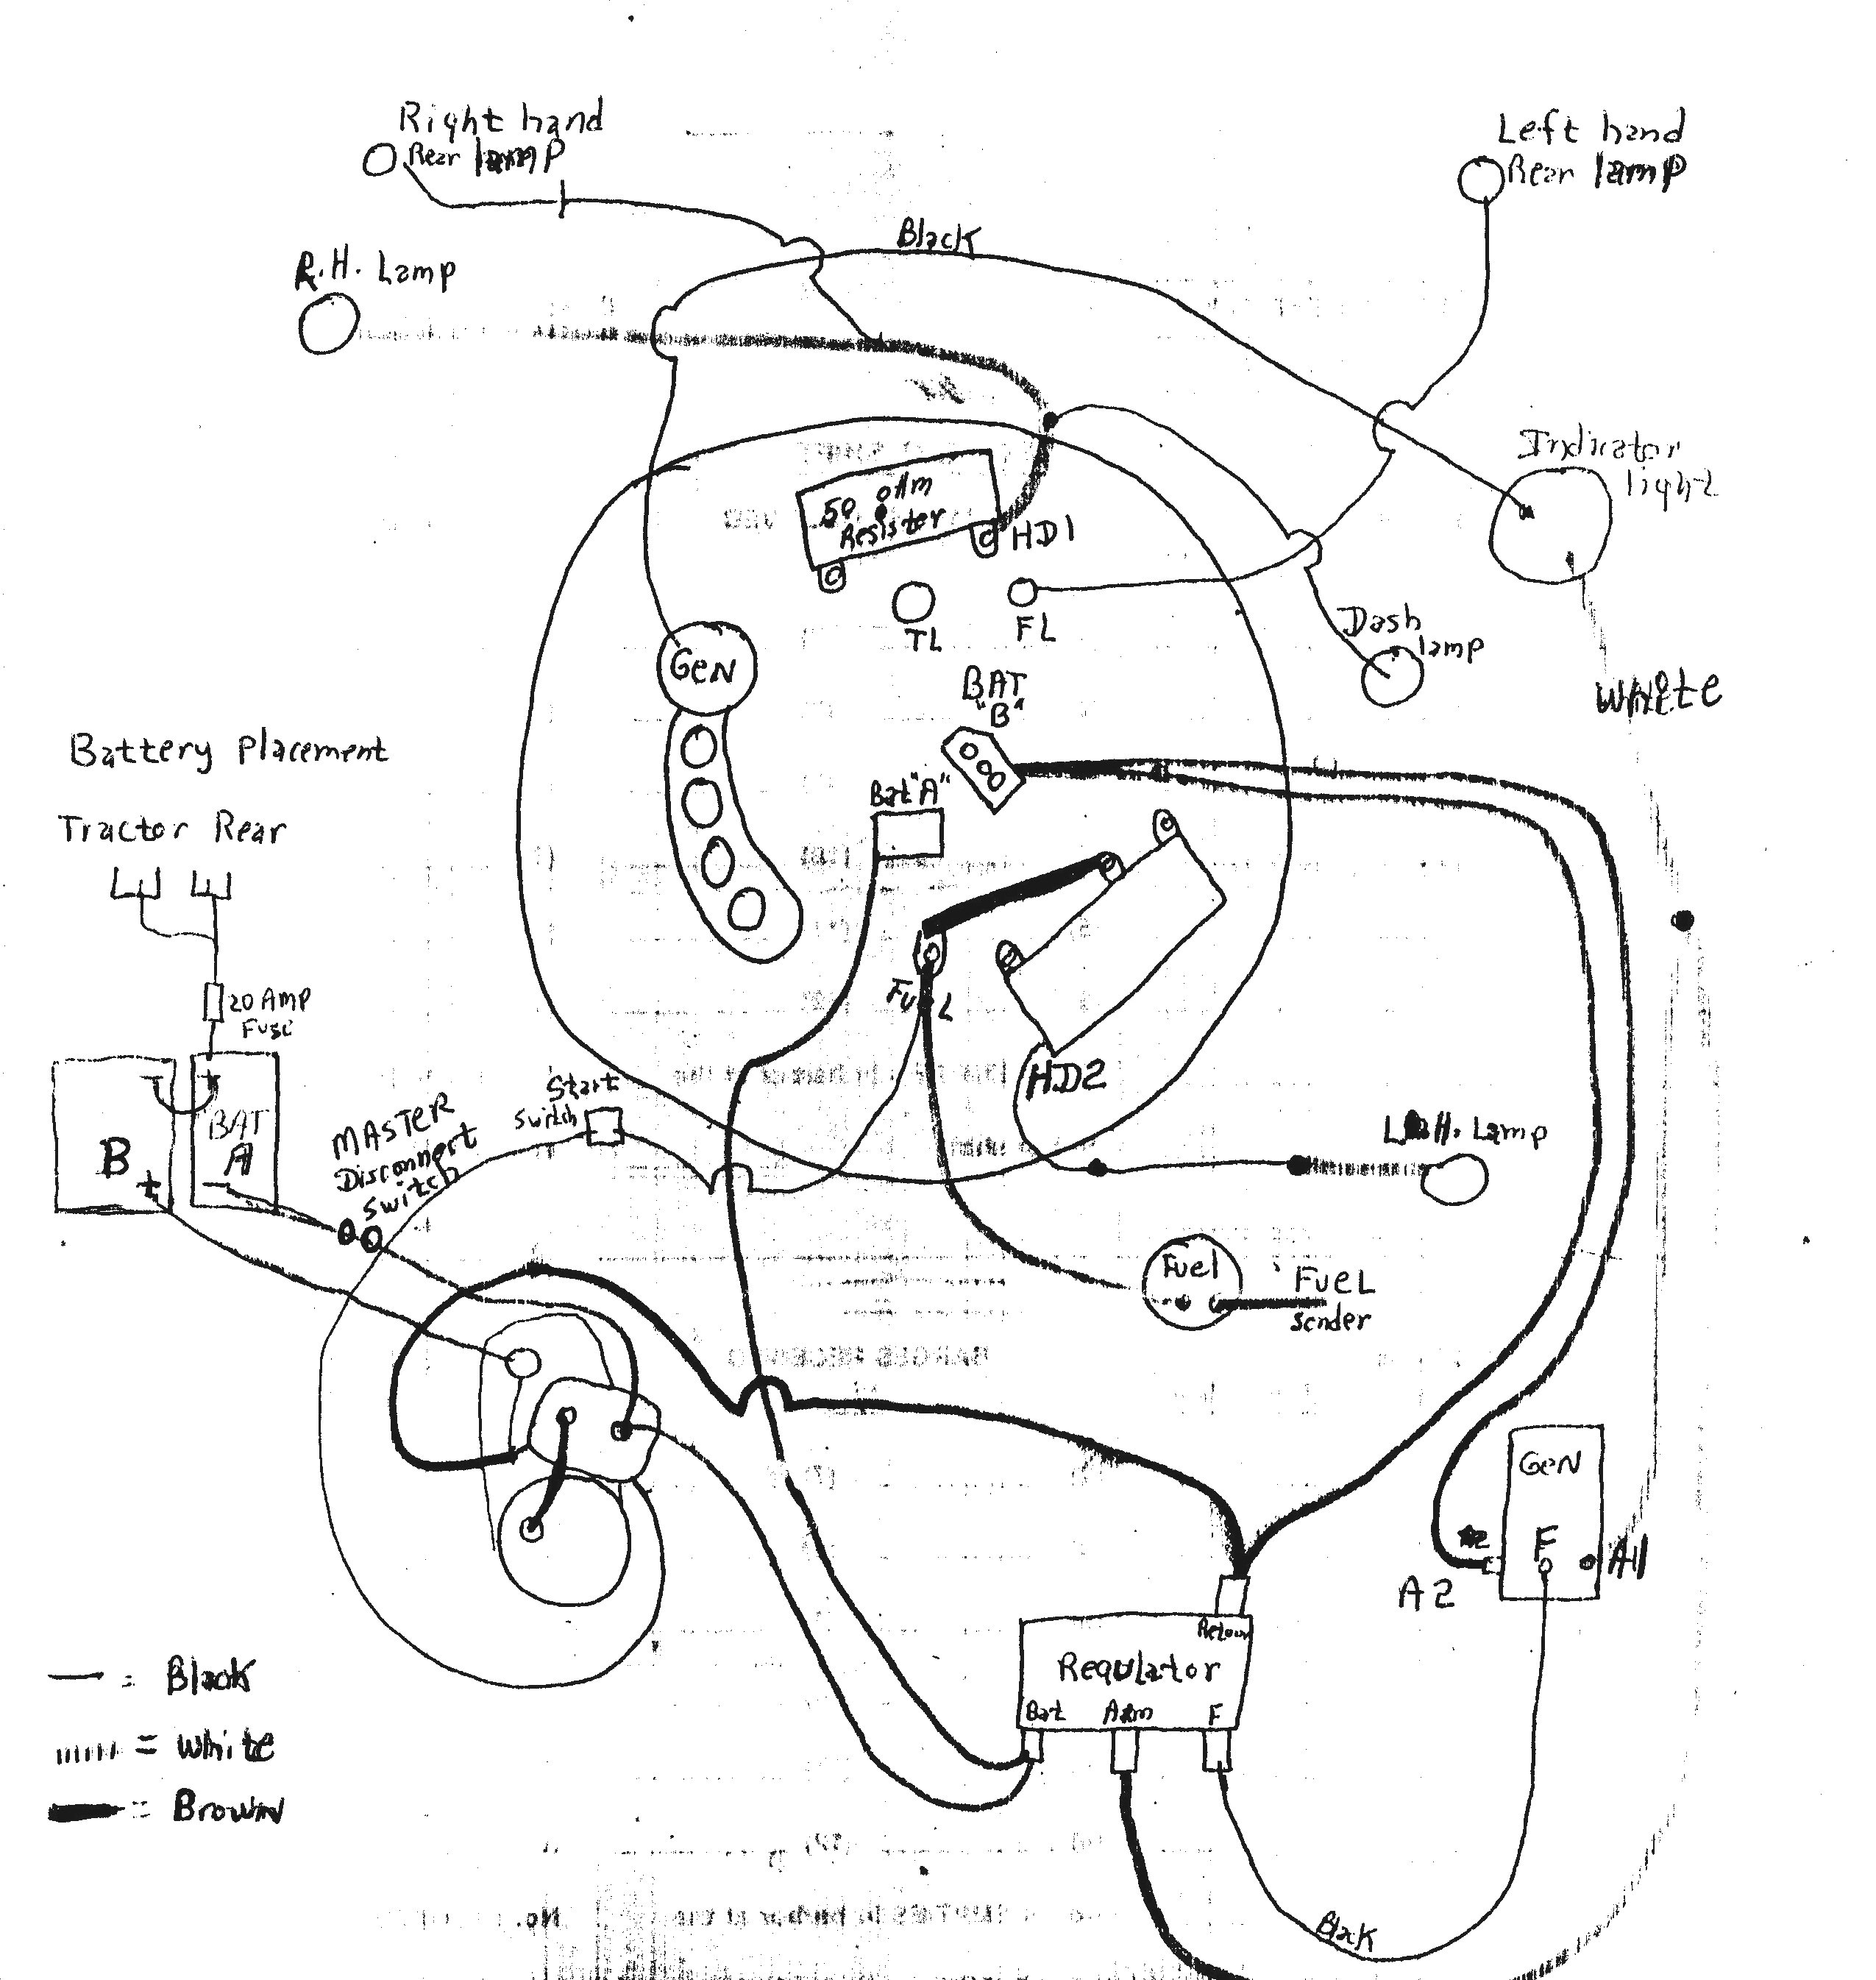 the john deere 24 volt electrical system explained rh petcaretips net John Deere Model A Wiring Diagram John Deere Mower Wiring Diagram